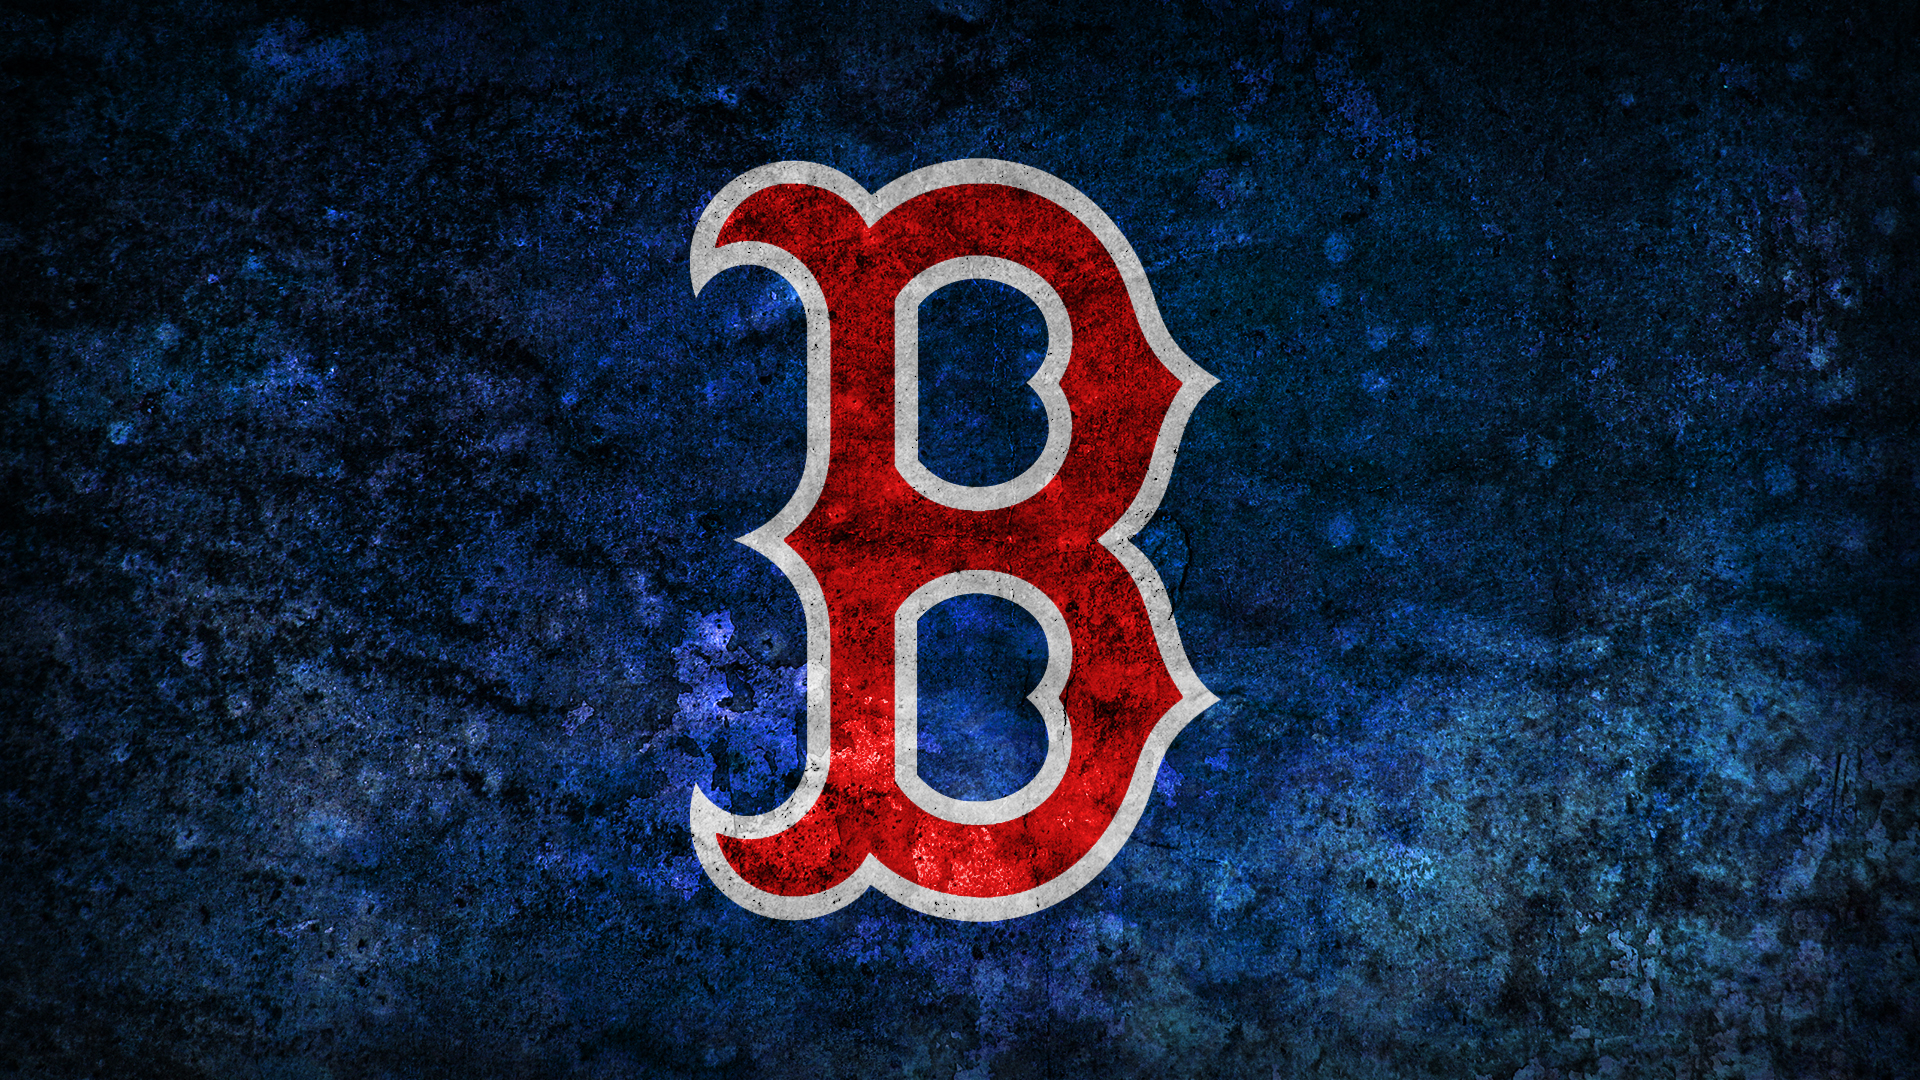 1920x1080 - Boston Red Sox Wallpaper Screensavers 20